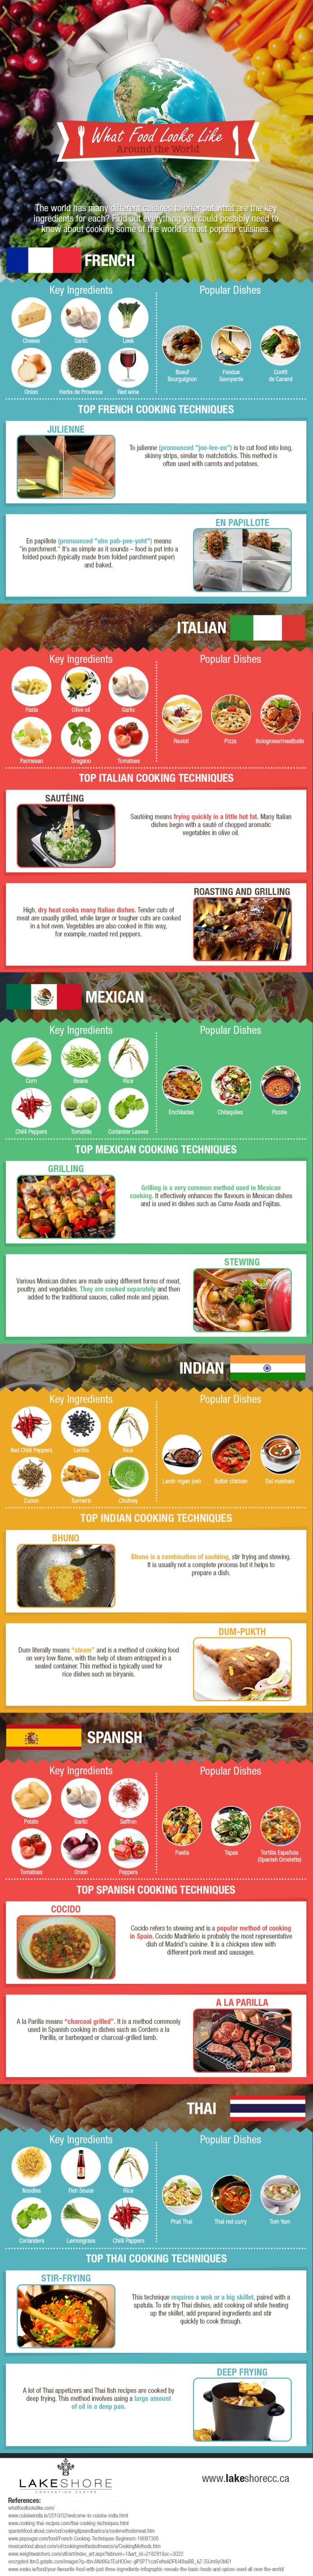 what-food-looks-like-around-the-world--infographic_54feee066f2e3_w694